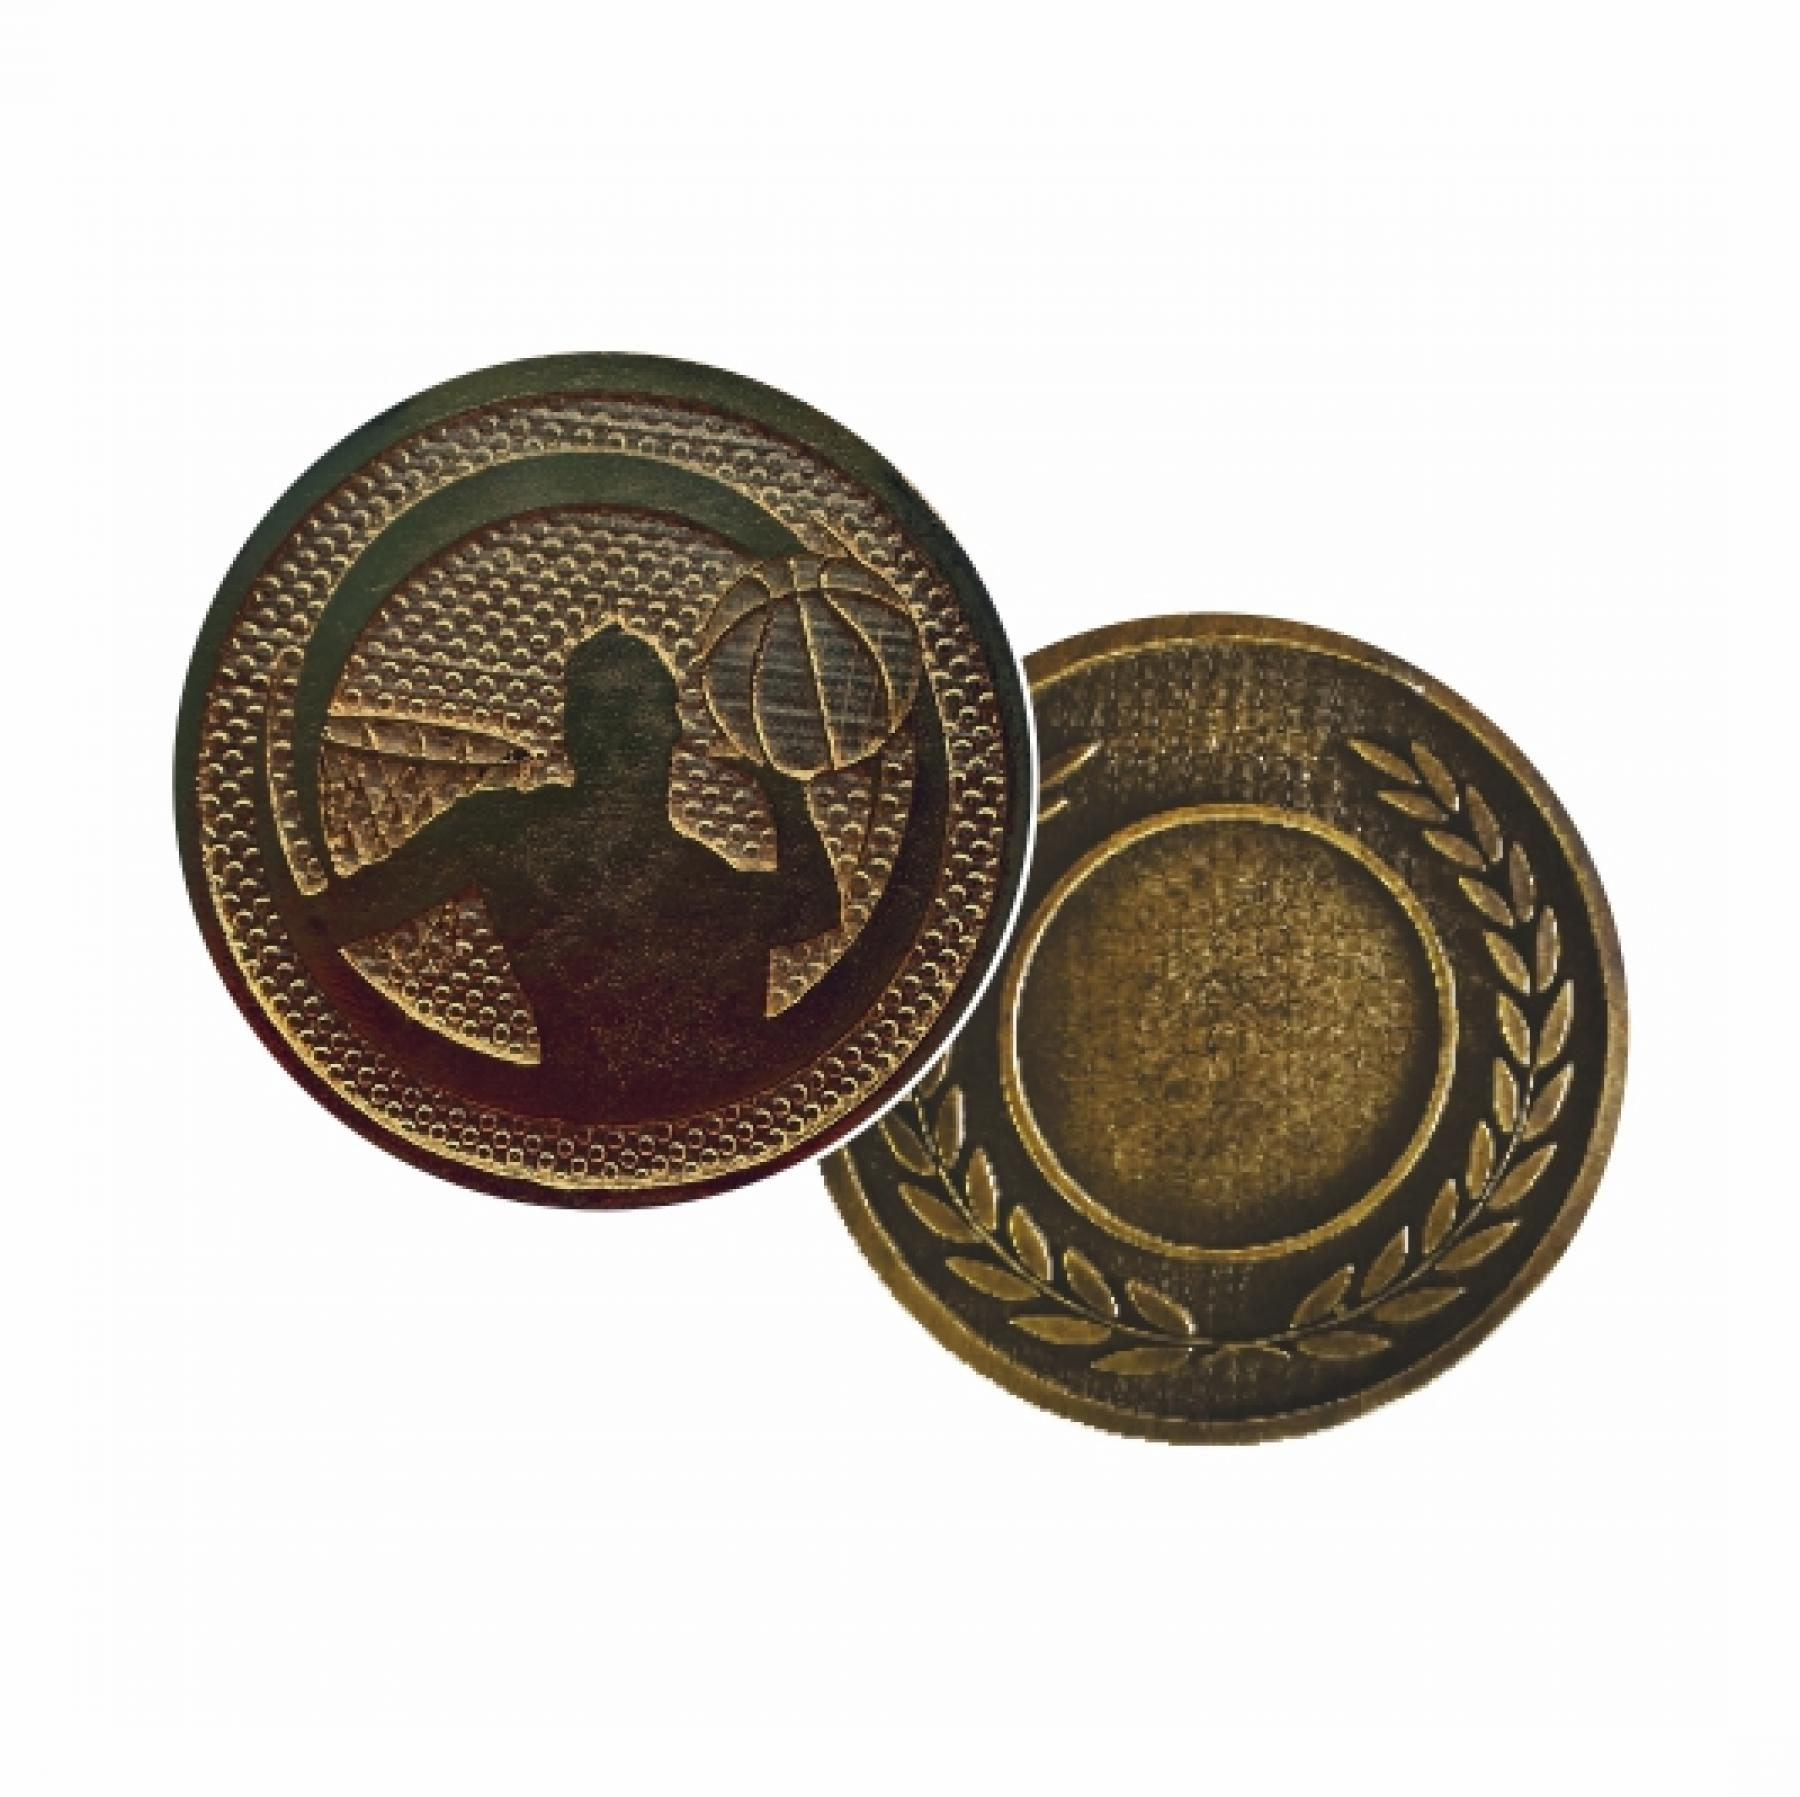 Xco Plated Medals Basketball Bronze